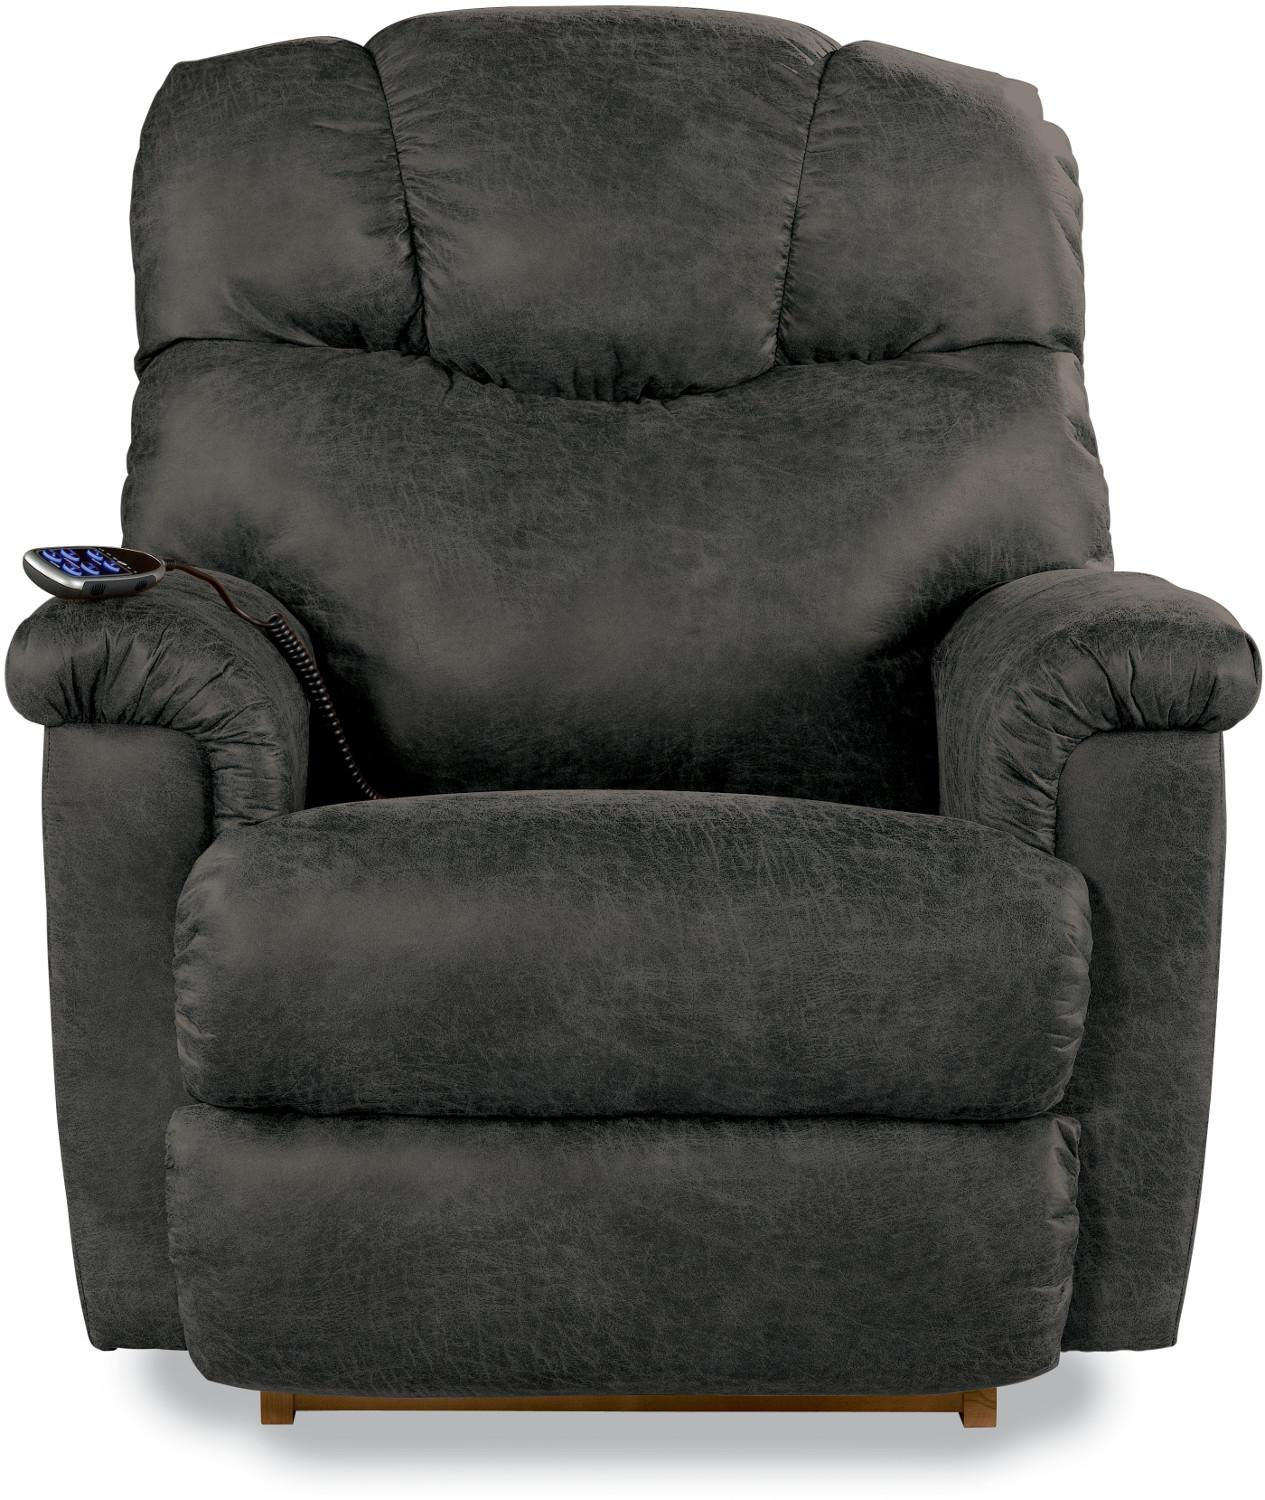 Lancer Power Rocking Recliner w/ Headrest by La-Z-Boy at Lynn's Furniture & Mattress